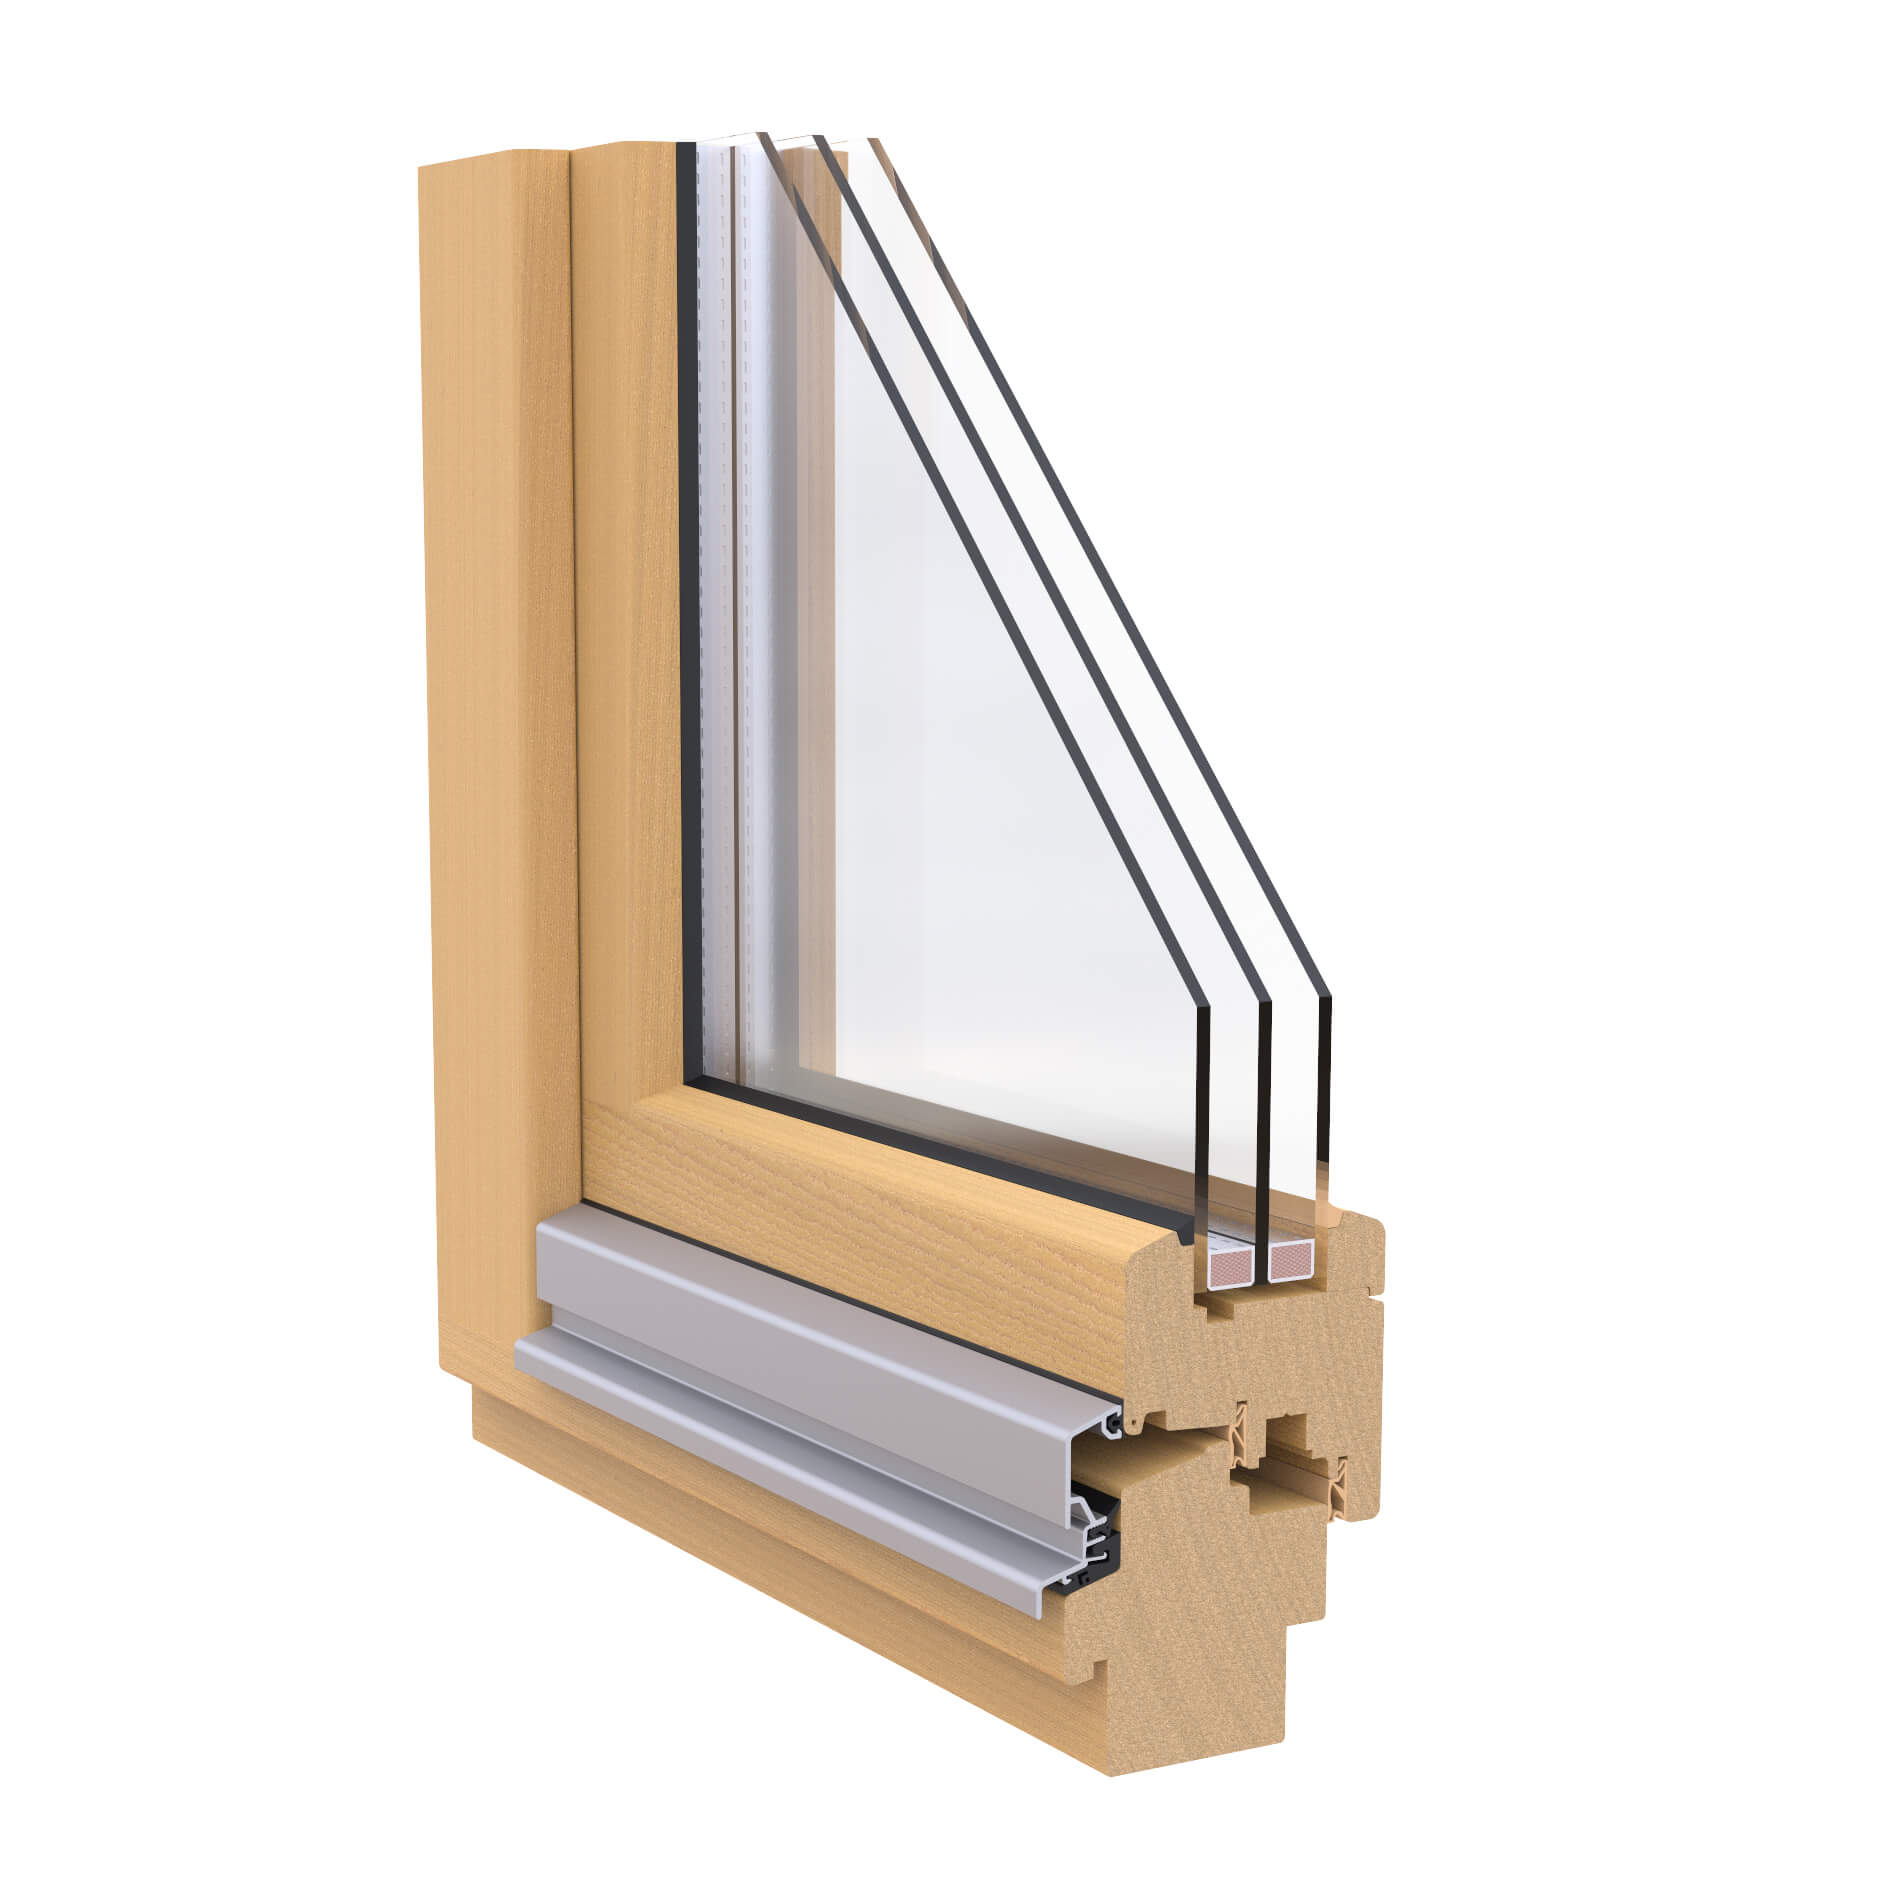 WINDOR® Timber Window OPUS 78 External Profile